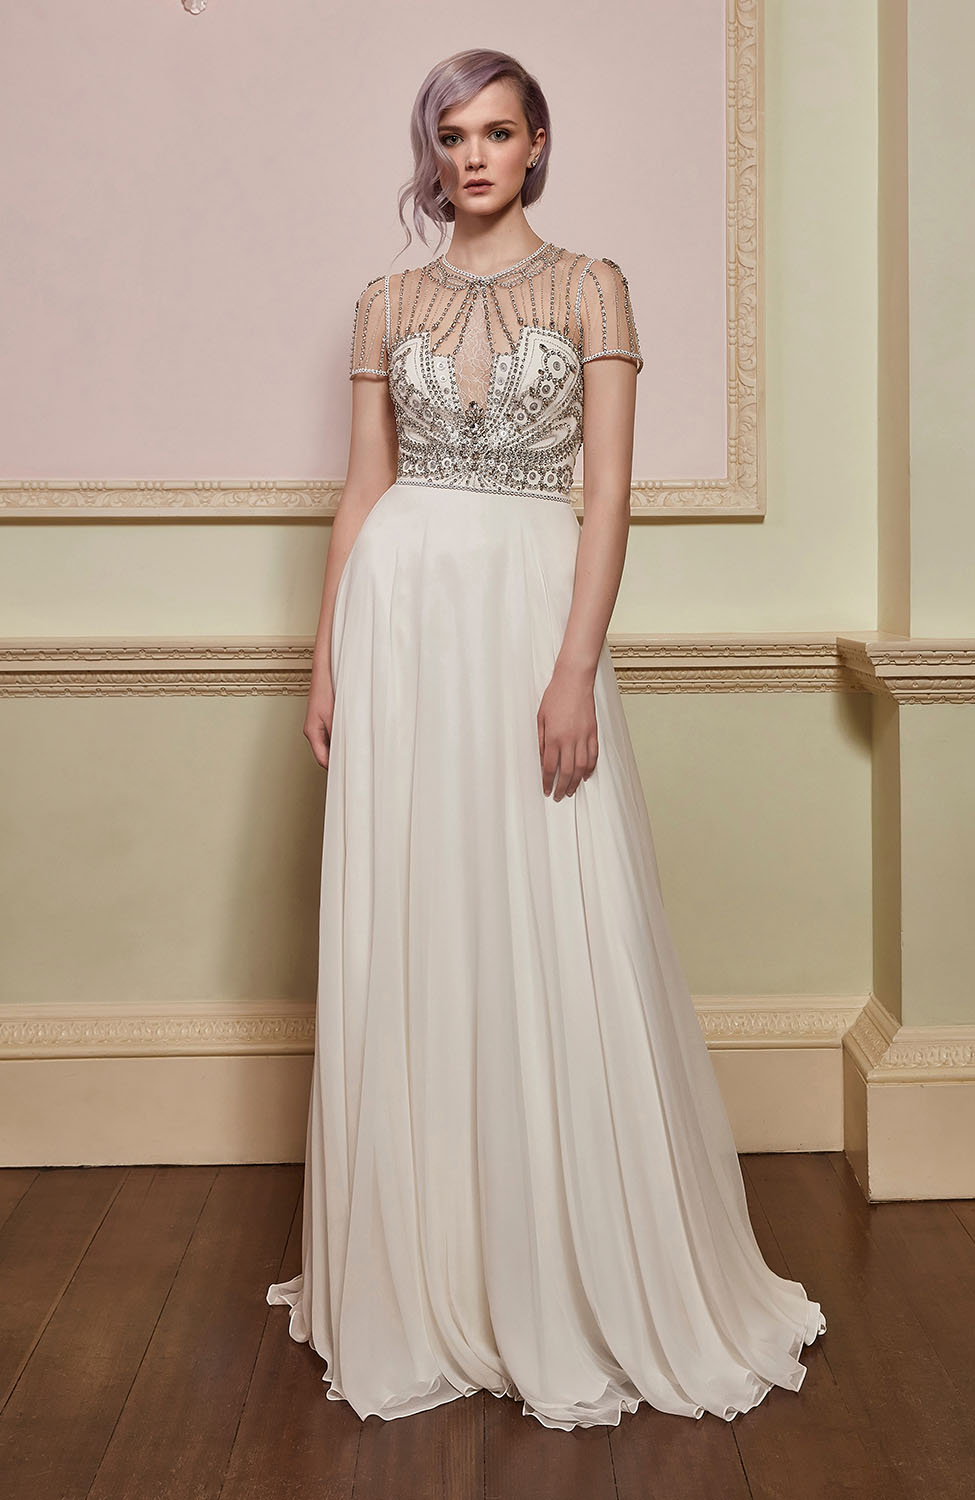 Jenny Packham Wedding Dress -Destiny